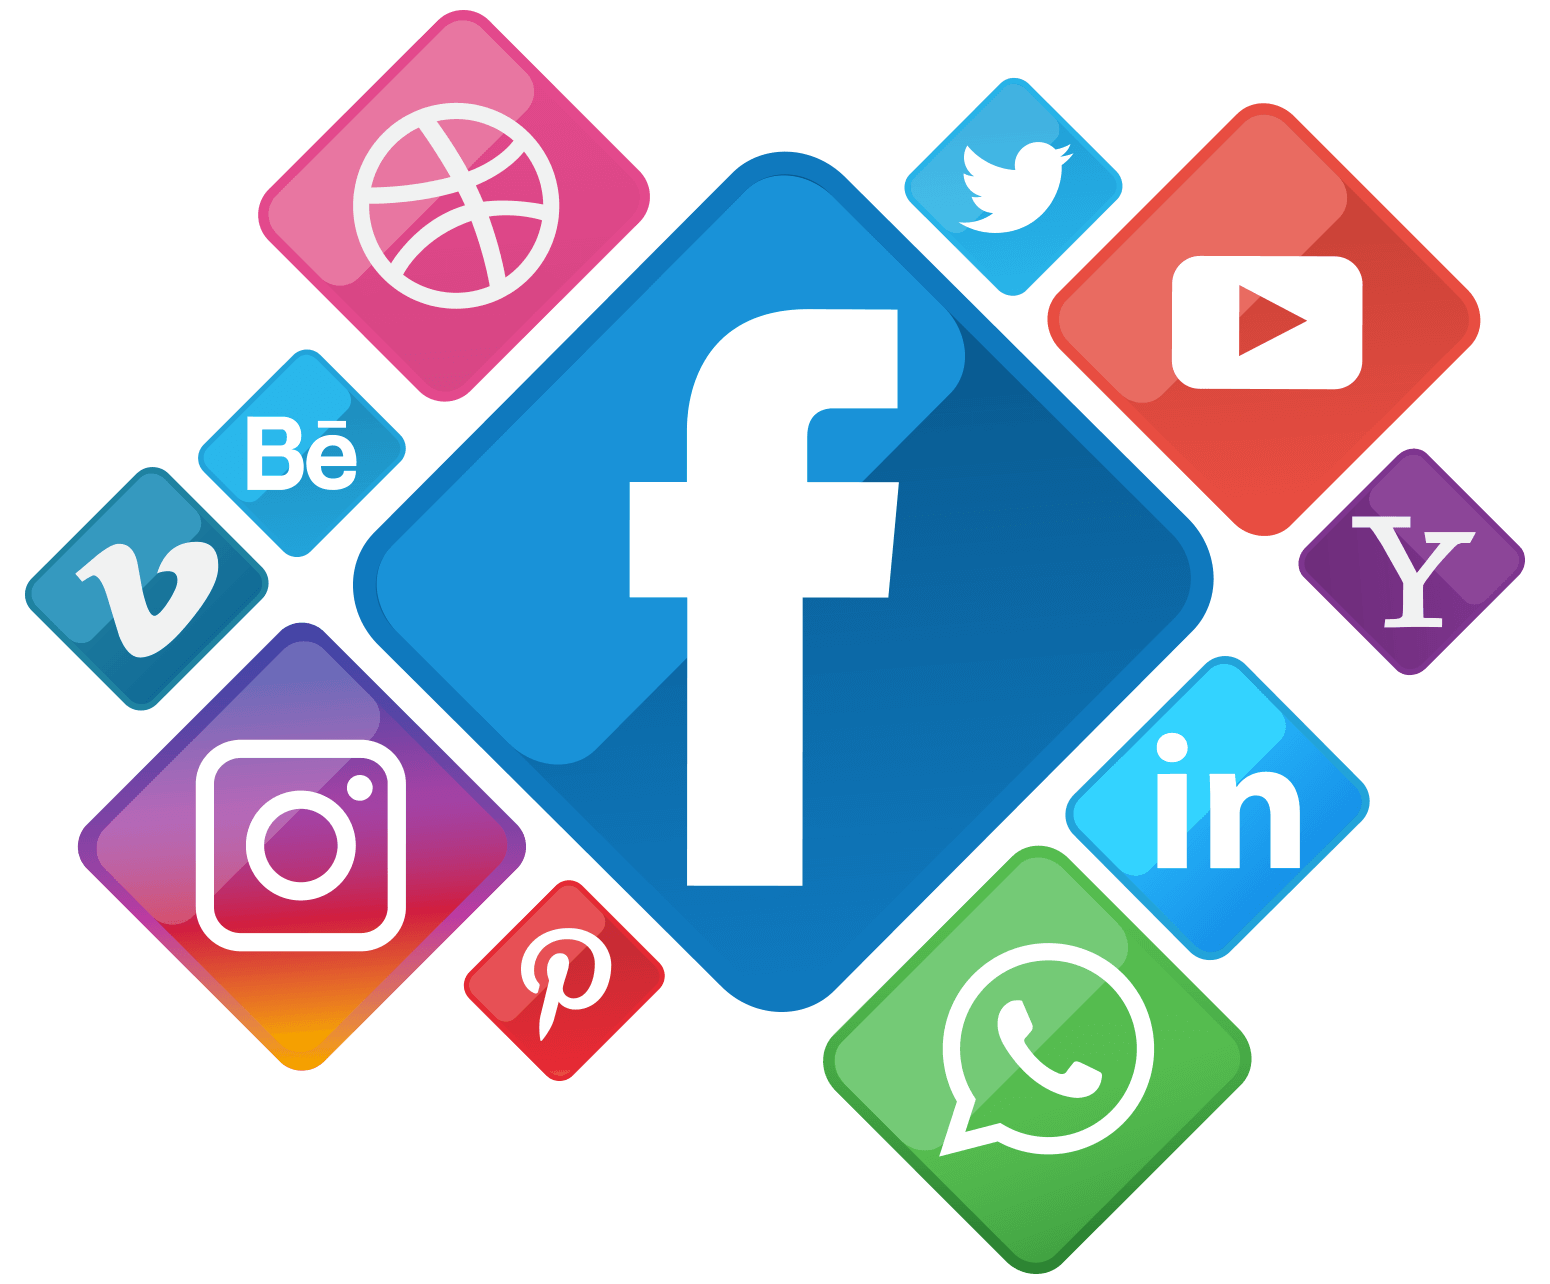 The Best Way to Execute The Successful Social Media Marketing Initiative